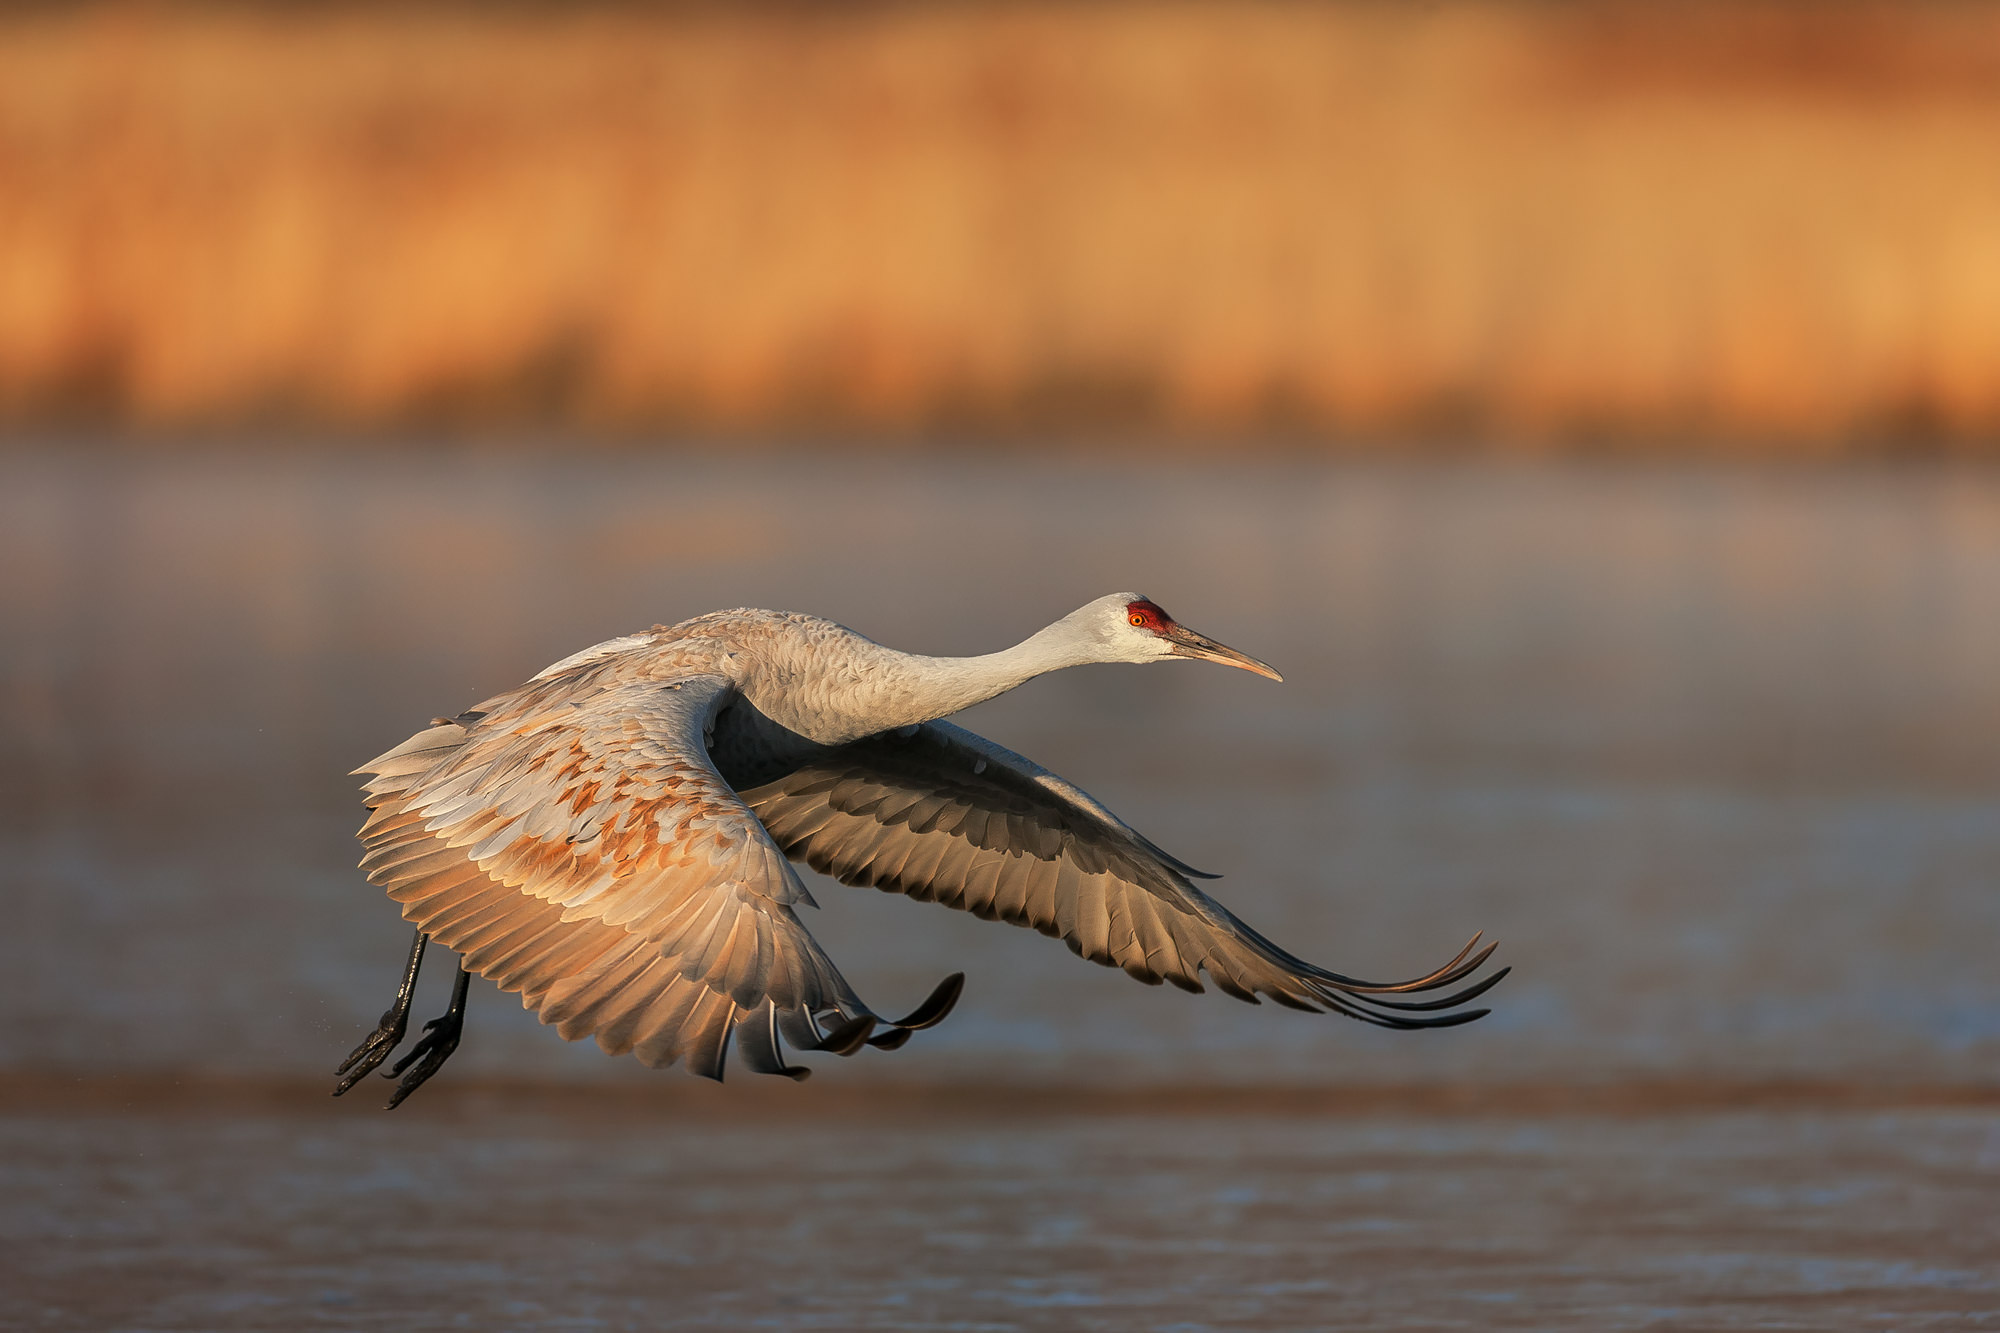 Sandhill Crane, New Mexico, Bosque del Apache, limited edition, photograph, takeoff, fine art, wildlife, photo